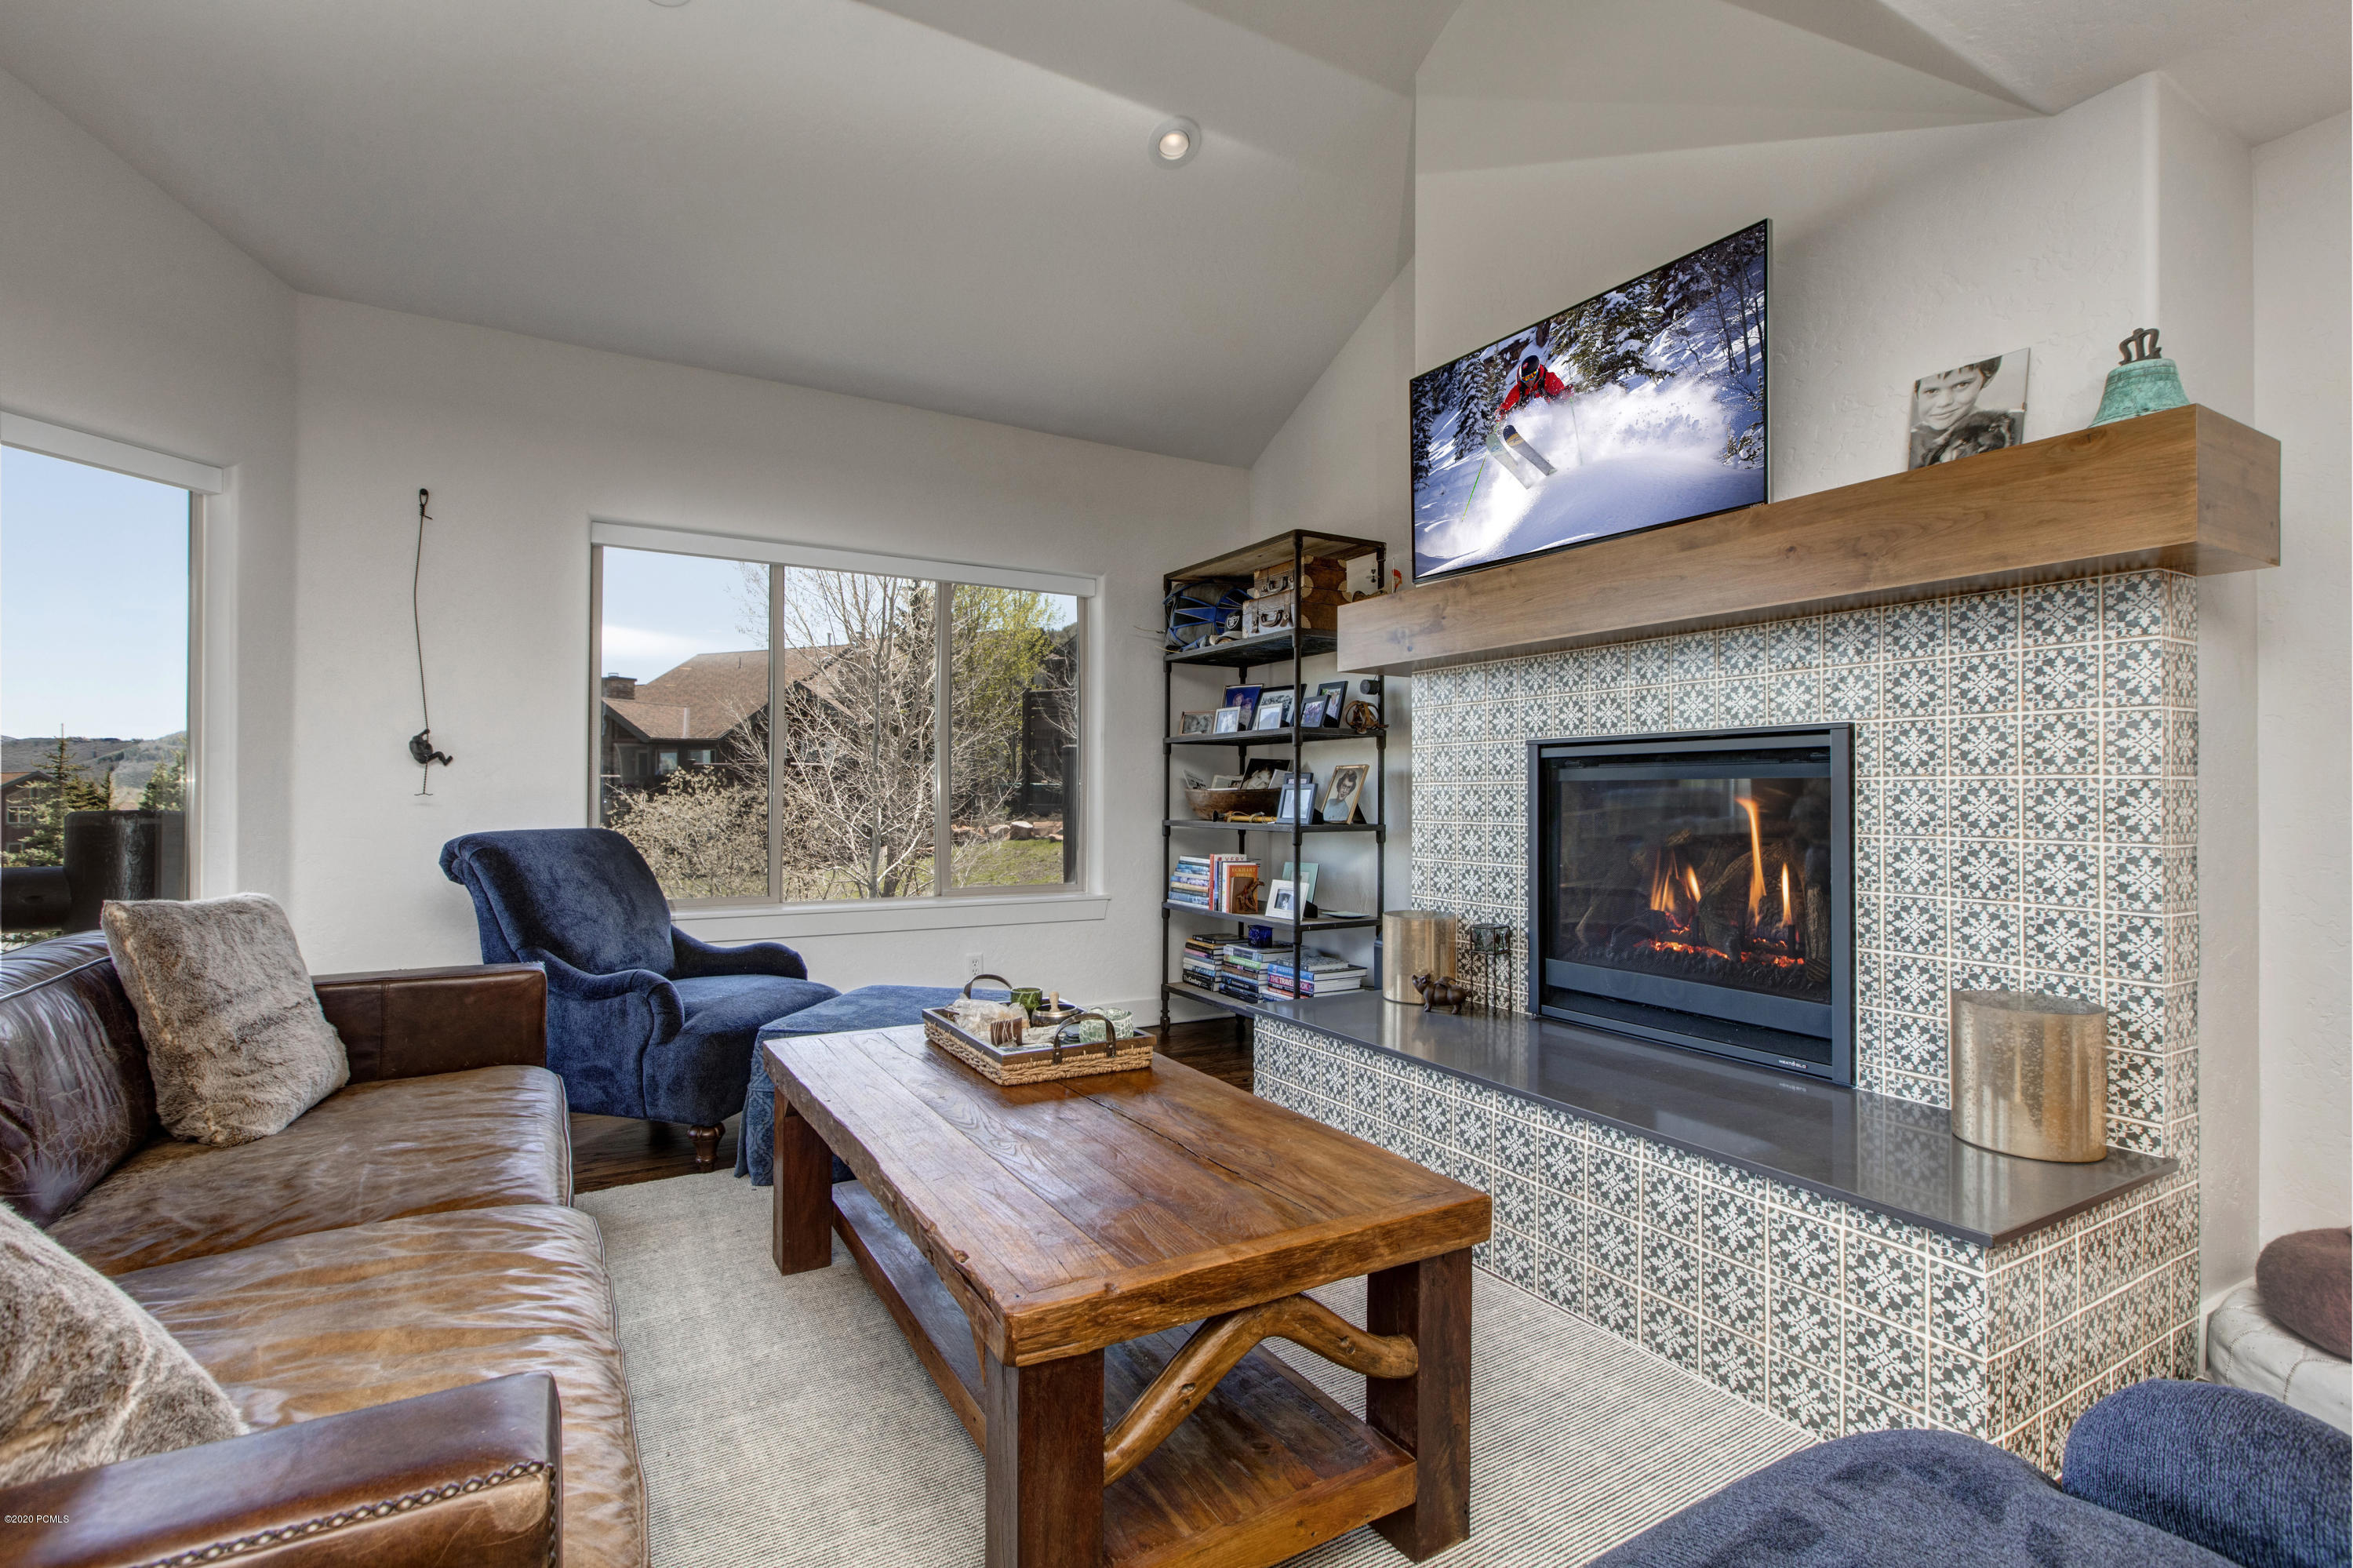 5171 Cove Canyon Drive, Park City, Utah 84098, 4 Bedrooms Bedrooms, ,3 BathroomsBathrooms,Condominium,For Sale,Cove Canyon,12002149